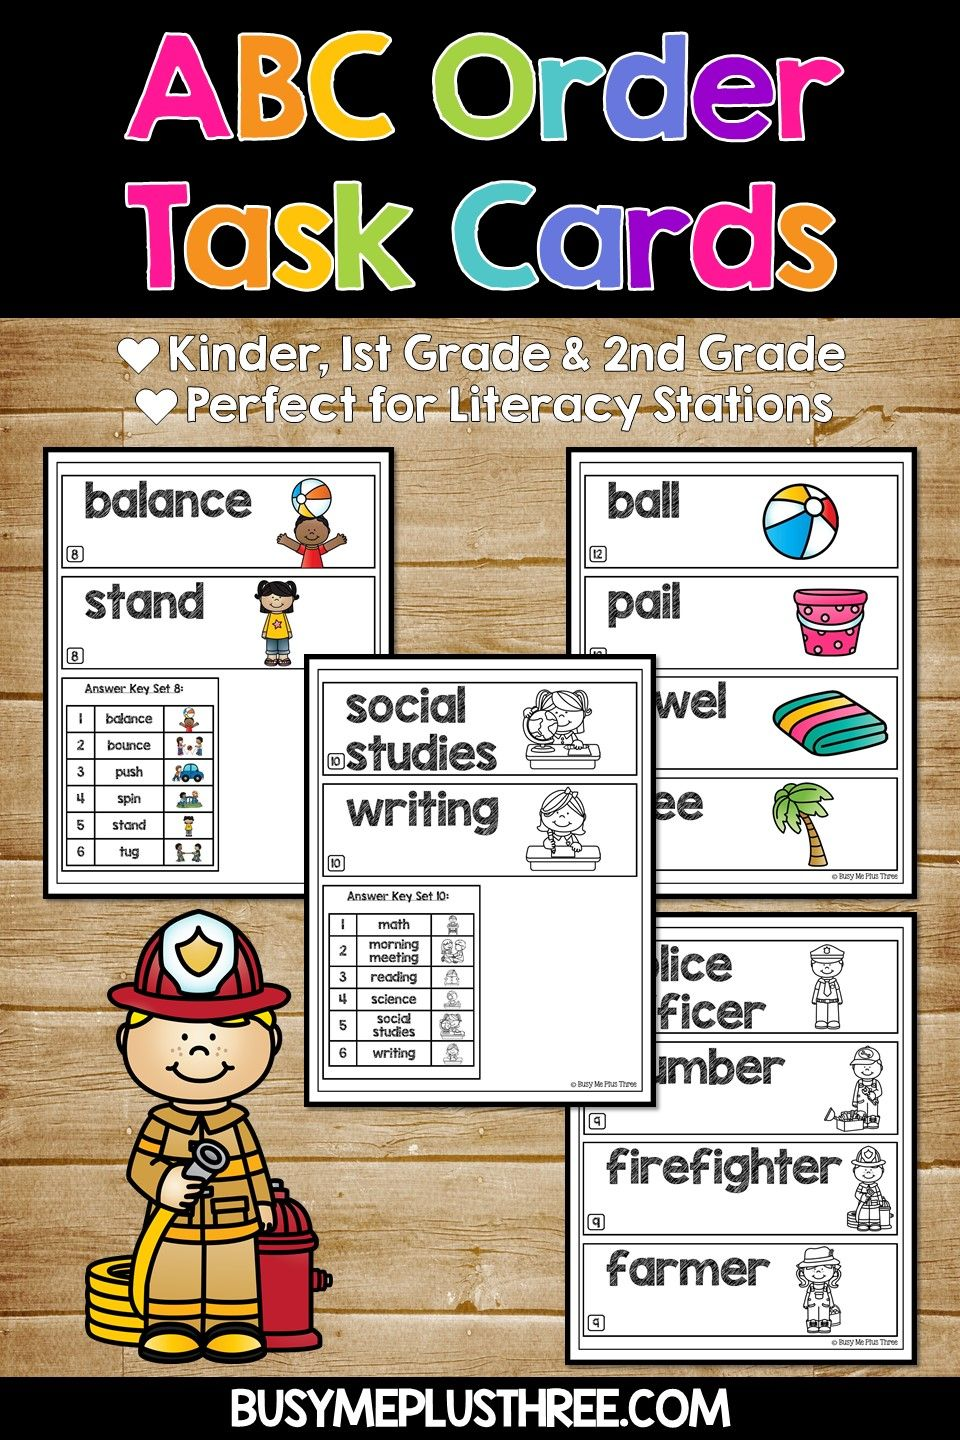 Abc Order To The First And Second Letter Alphabetical Order Workstations Centers Abc Order Abc Order Task Cards Literacy Stations [ 1440 x 960 Pixel ]